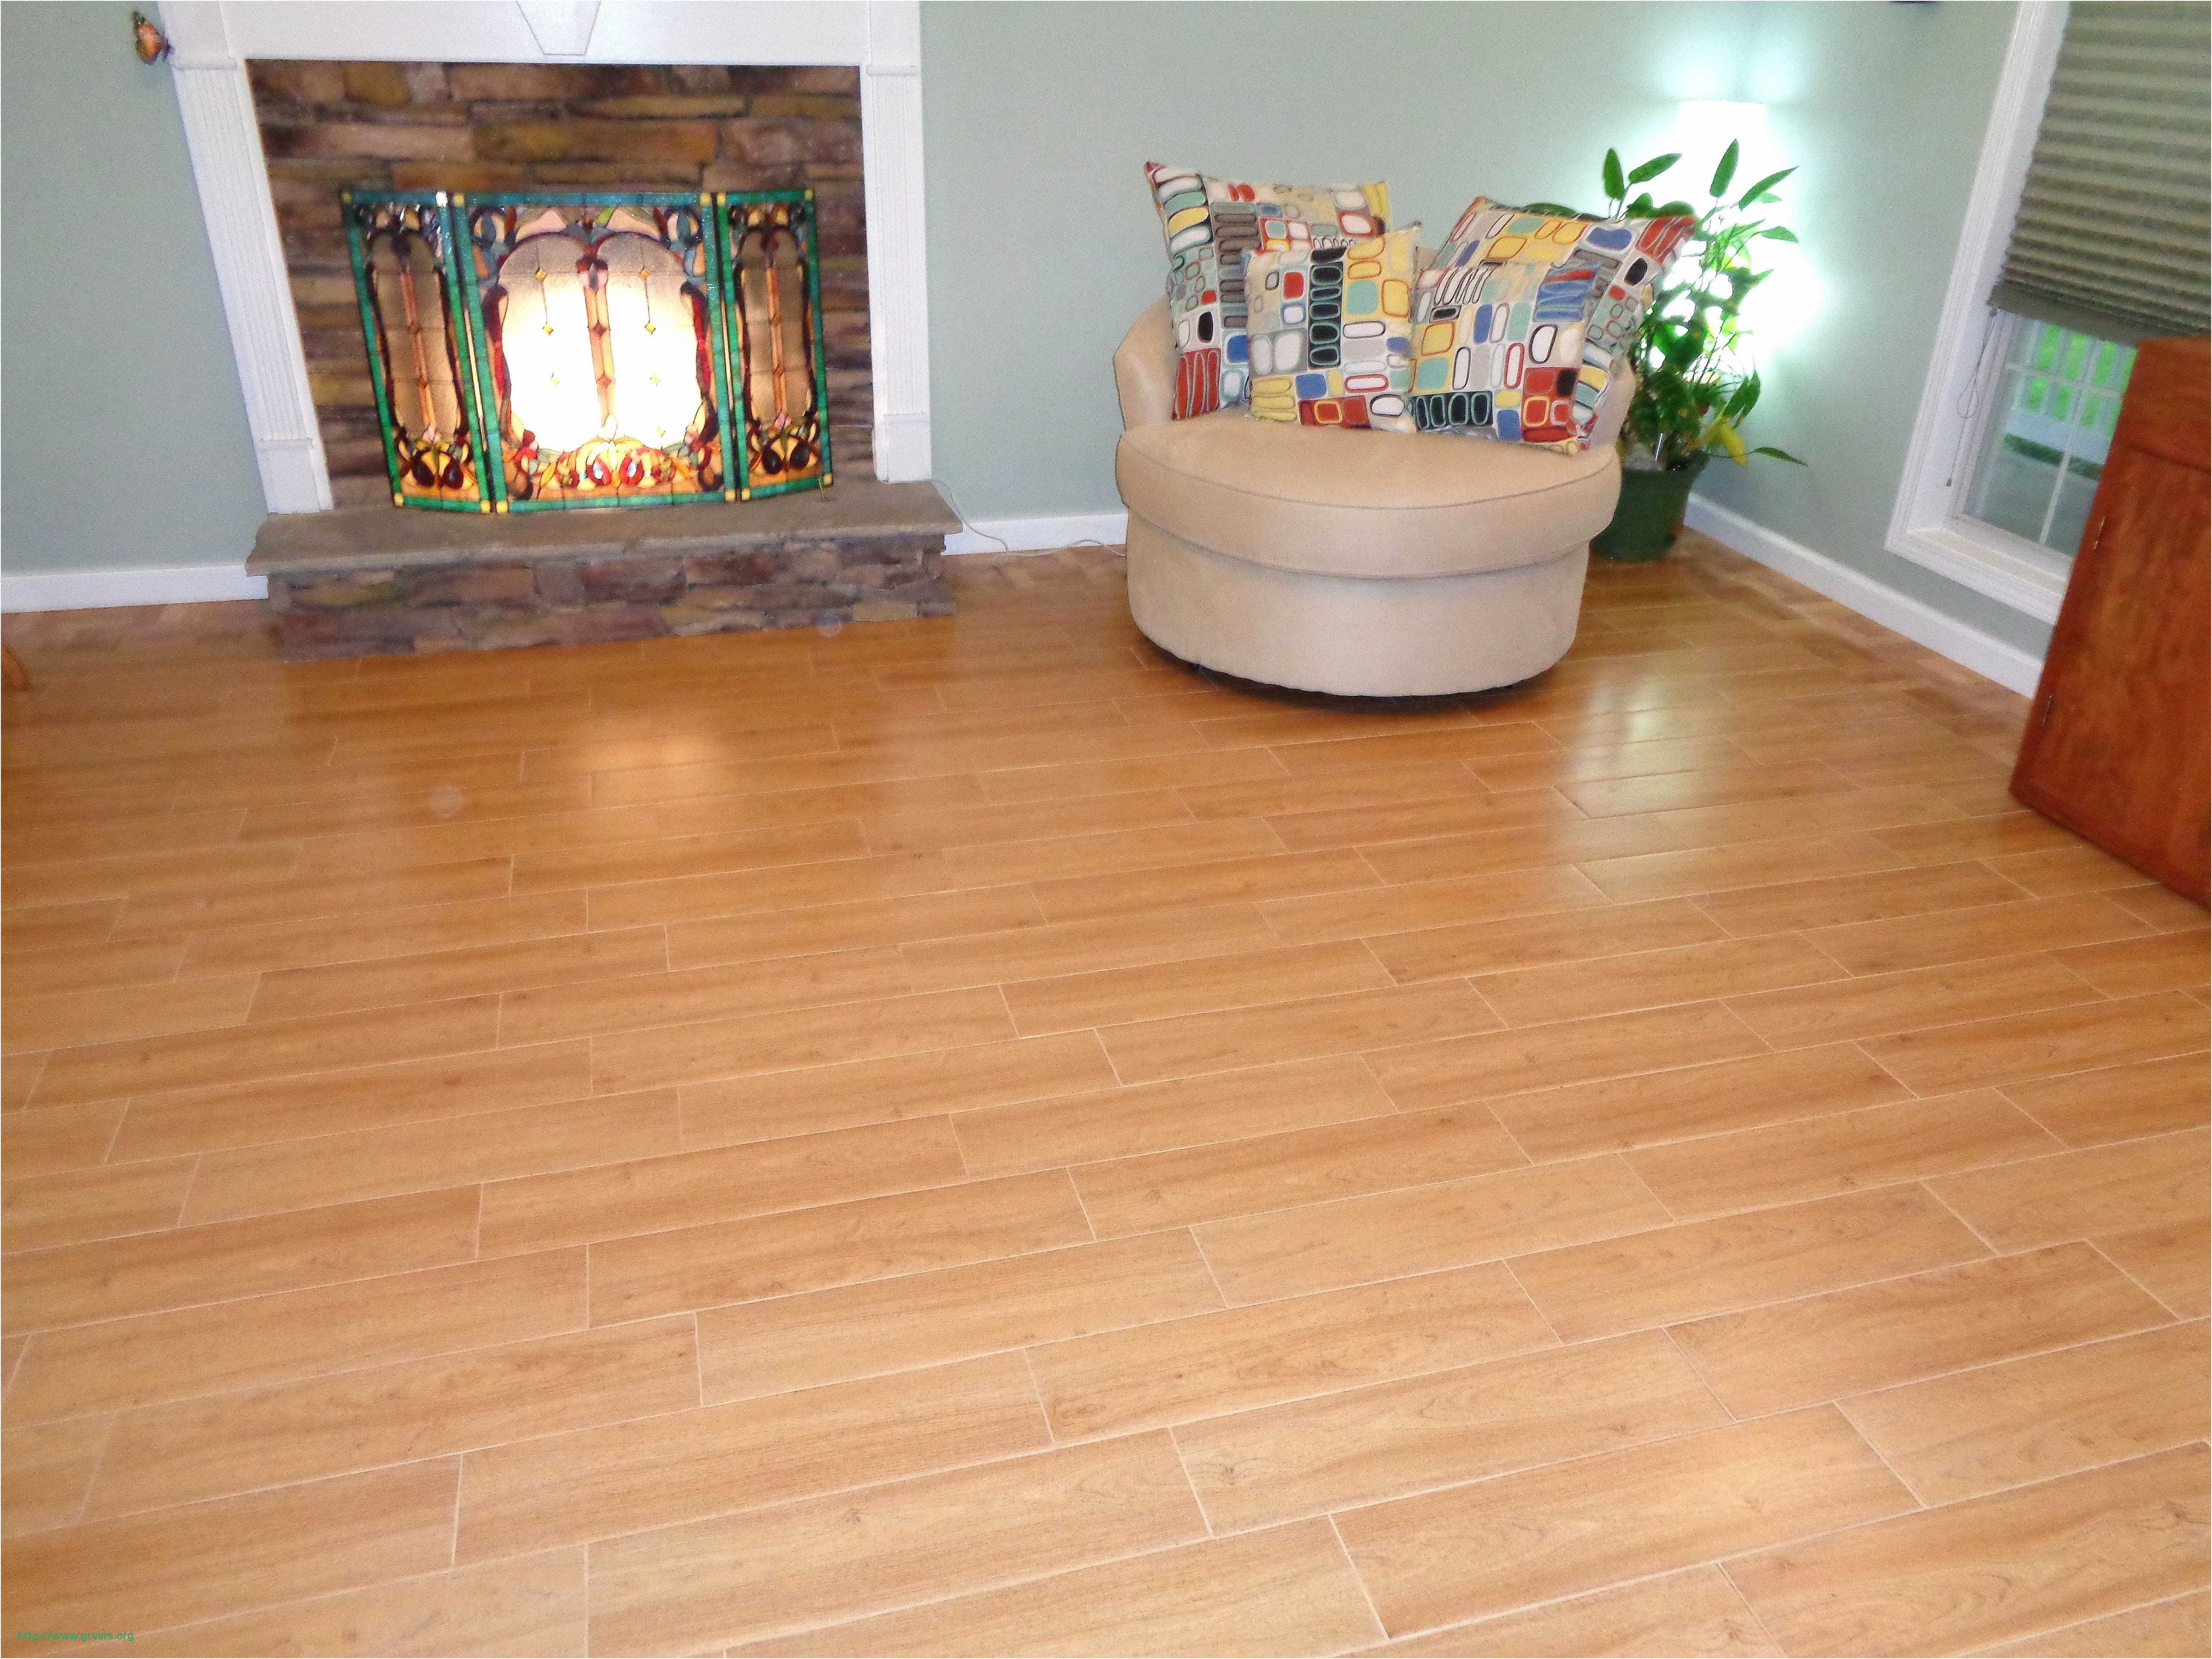 hardwood flooring sale of 20 impressionnant cheapest place to buy hardwood flooring ideas blog in cheapest place to buy hardwood flooring inspirant laminated wooden flooring prices guide to solid hardwood floors